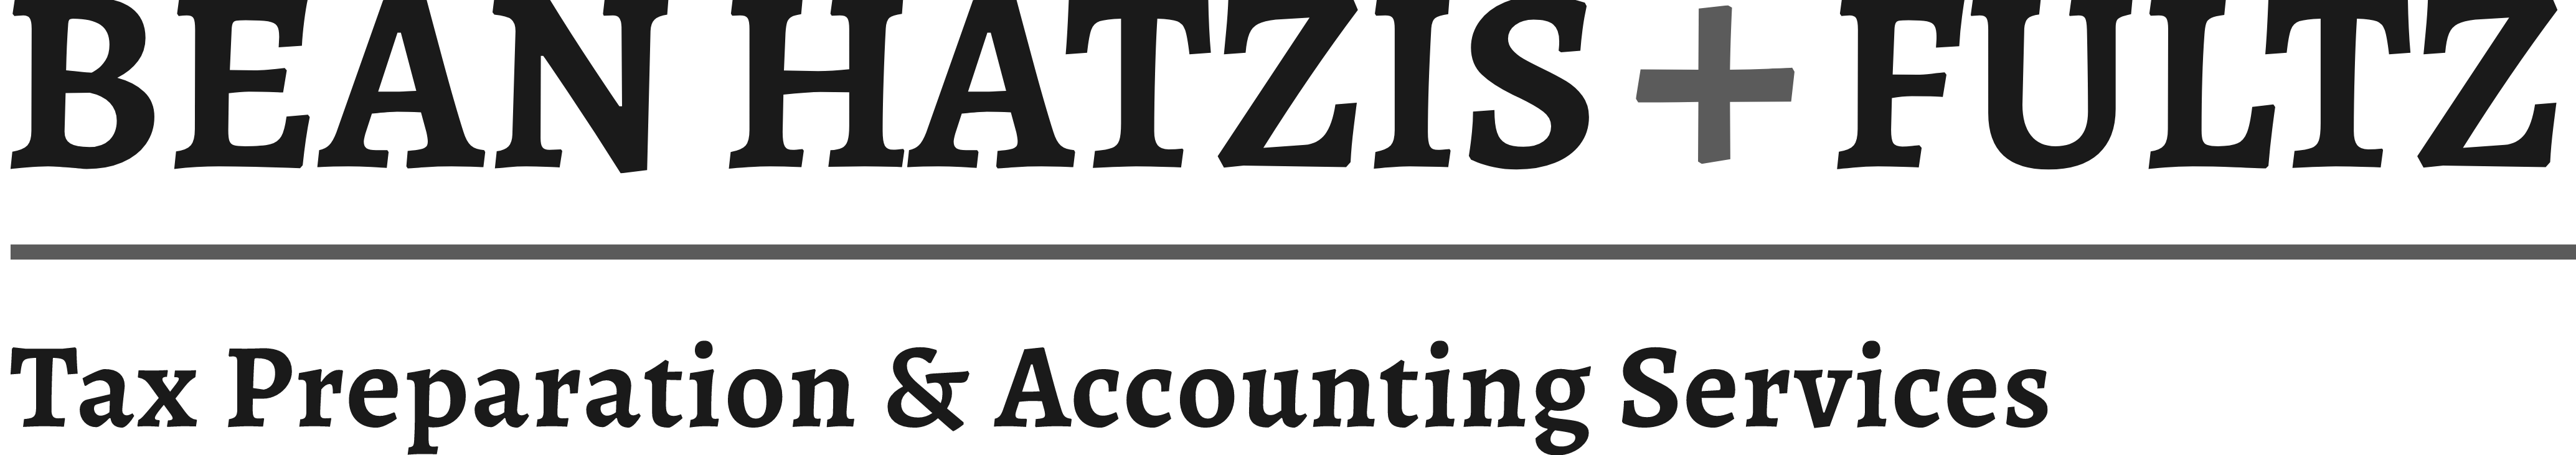 Salem, MA Tax Preparation Firm | Tax Planning Page | Bean Hatzis & Fultz